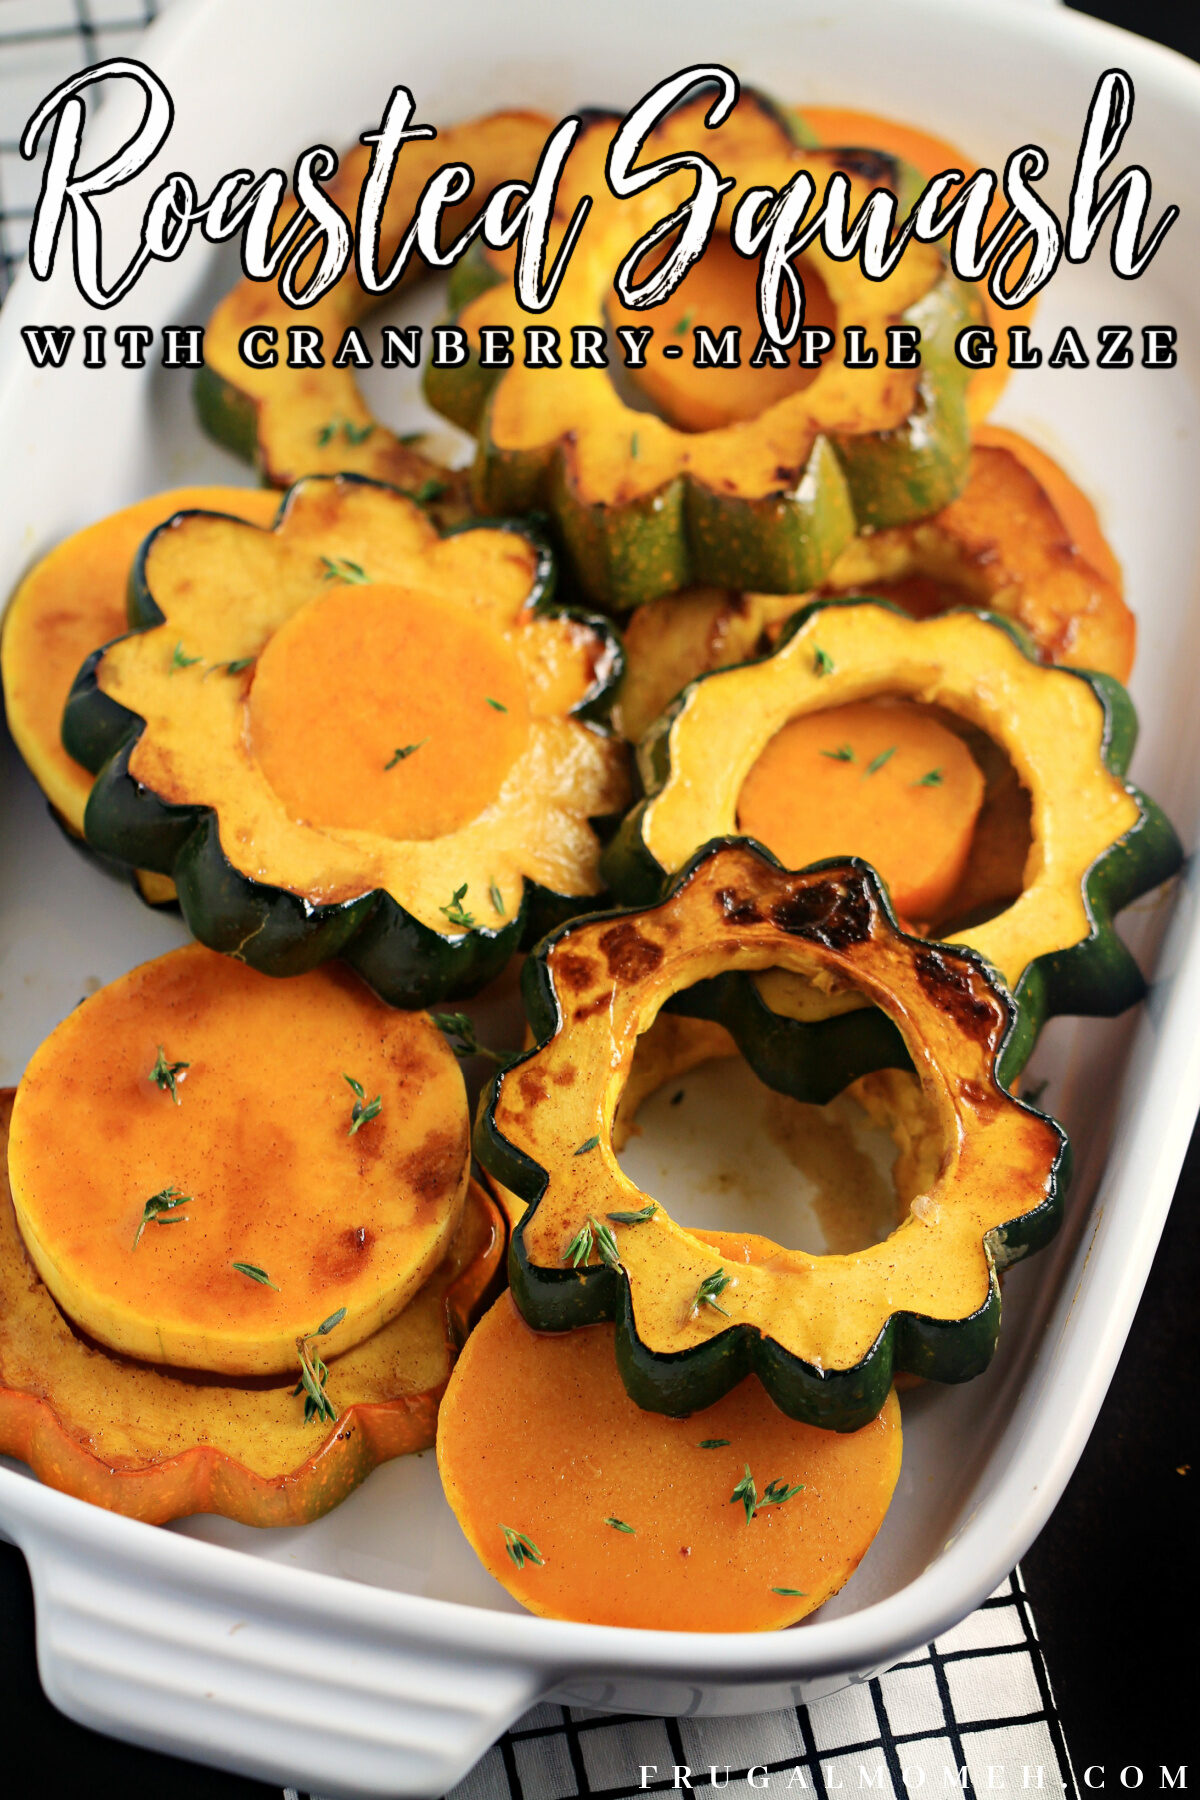 This Roasted Squash with Cranberry-Maple Glaze recipe makes for a perfect autumn side dish. A delicious Thanksgiving side dish!